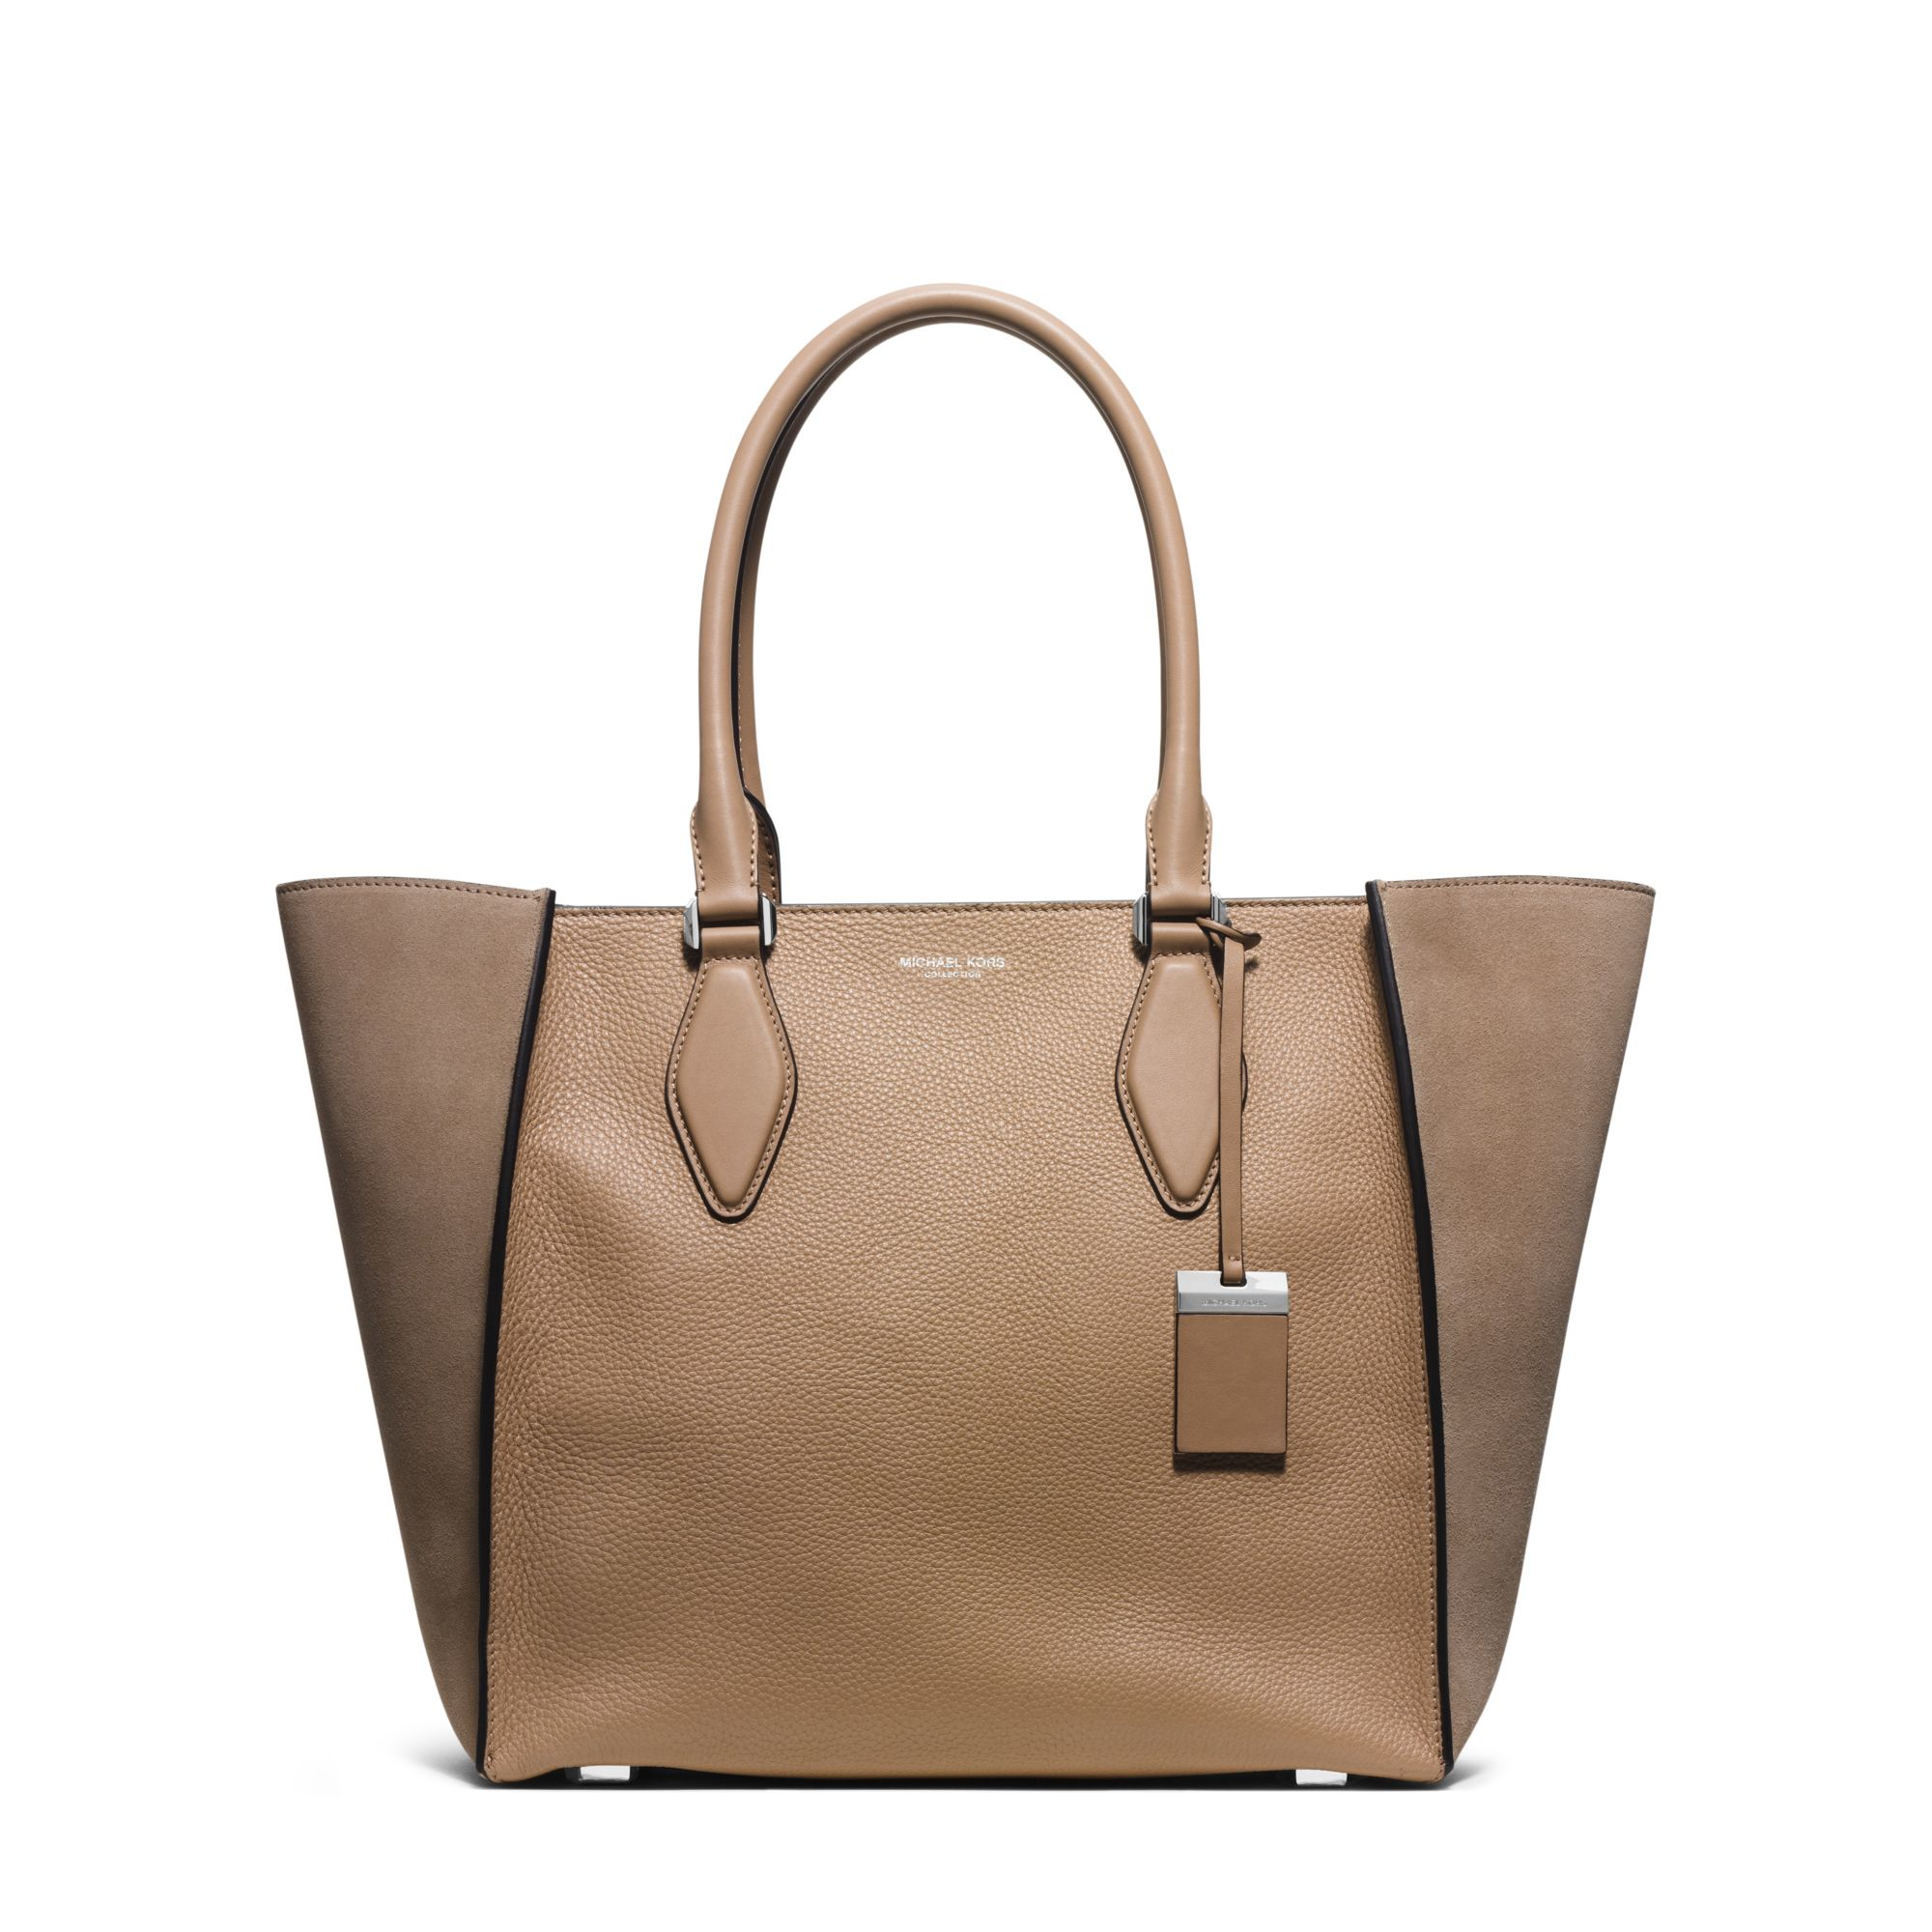 1e97aa55d507 Lyst - Michael Kors Gracie Large Suede And Leather Tote in Brown